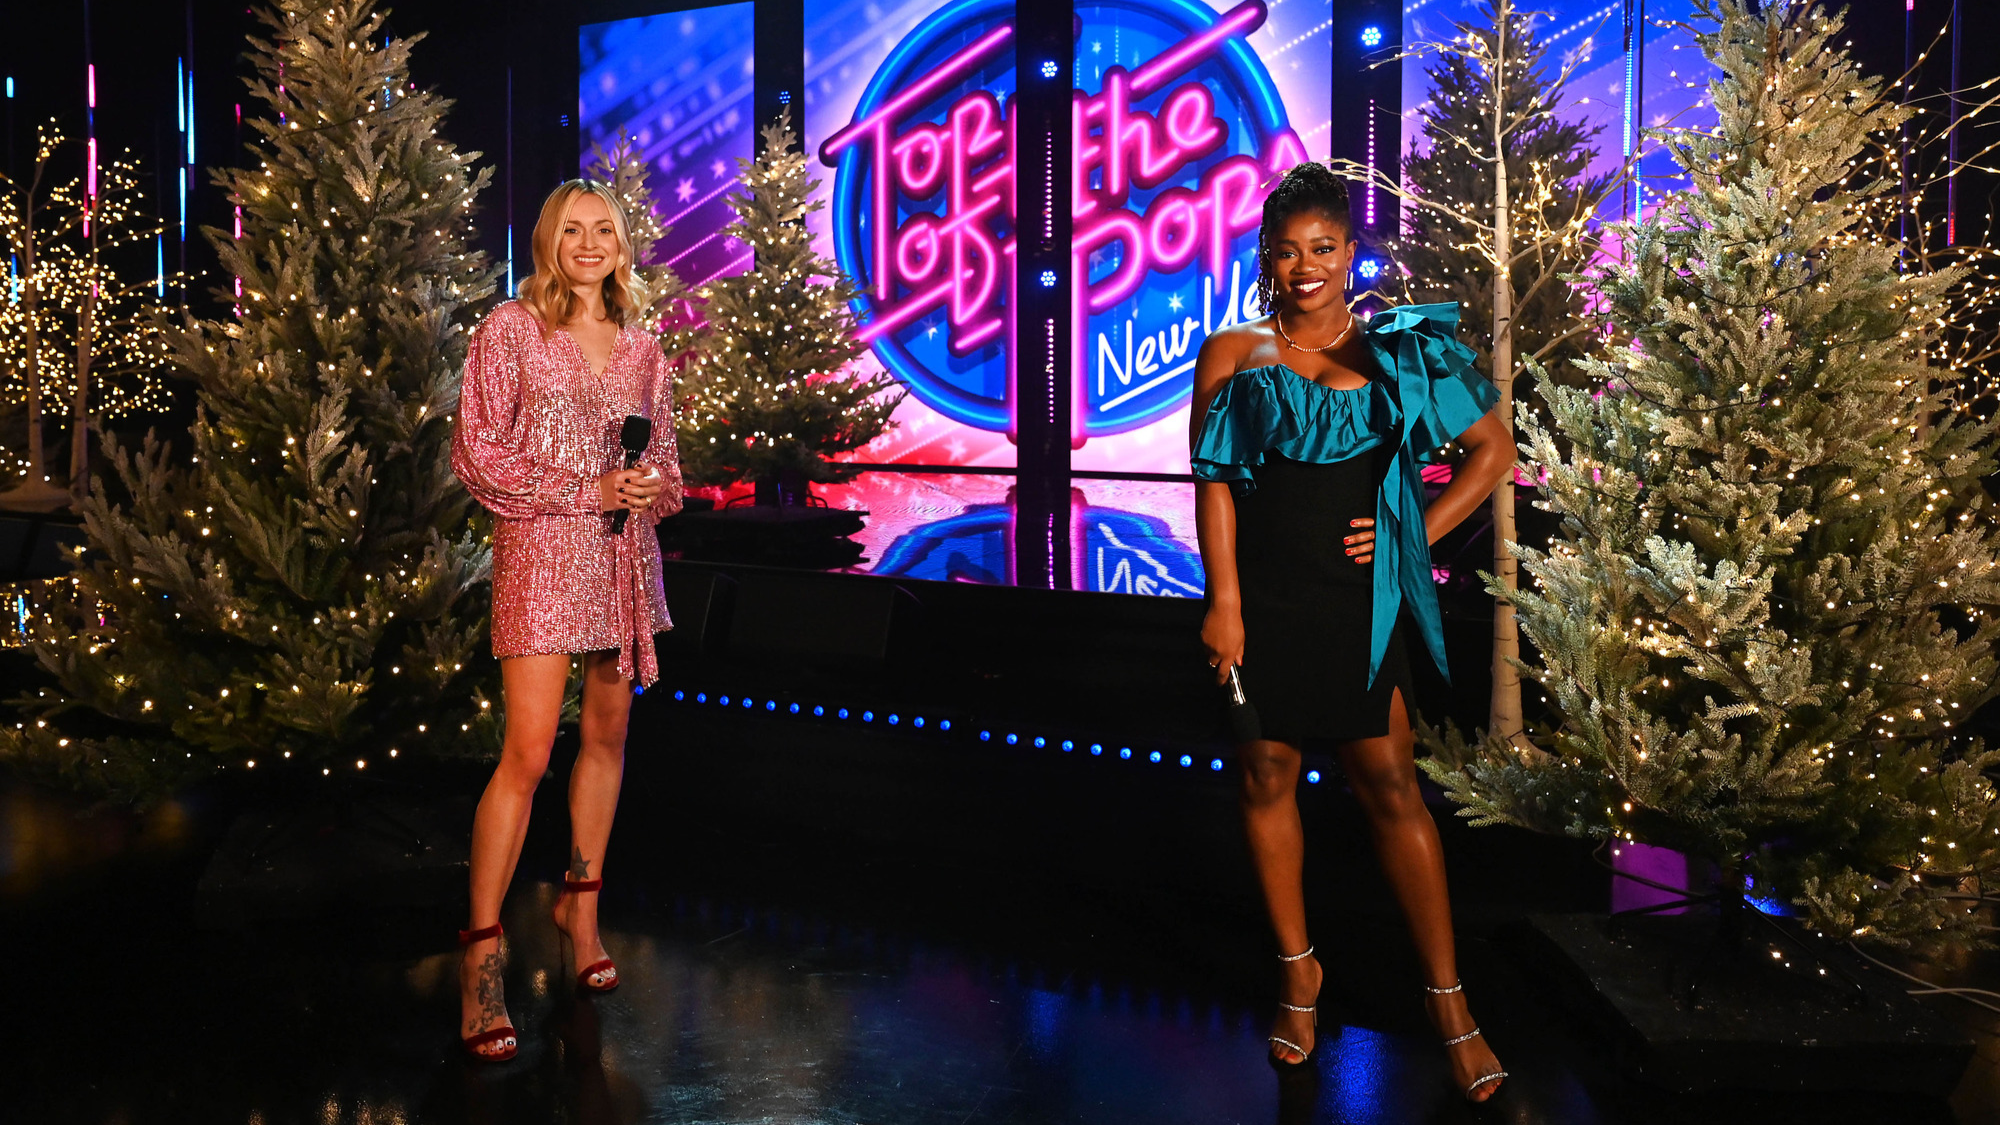 Top Of The Pops 2021 Christmas